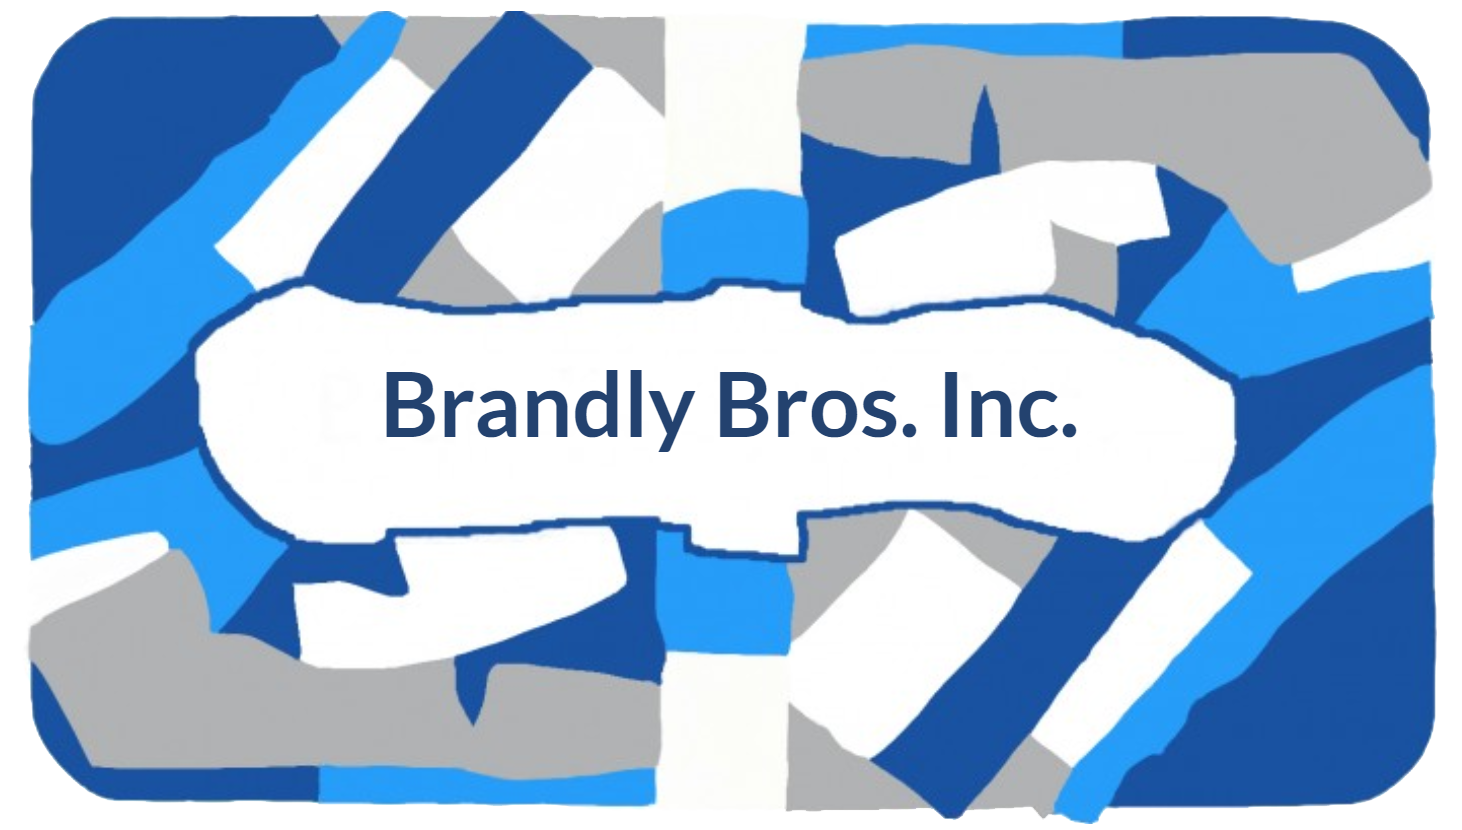 brandly bros. inc.